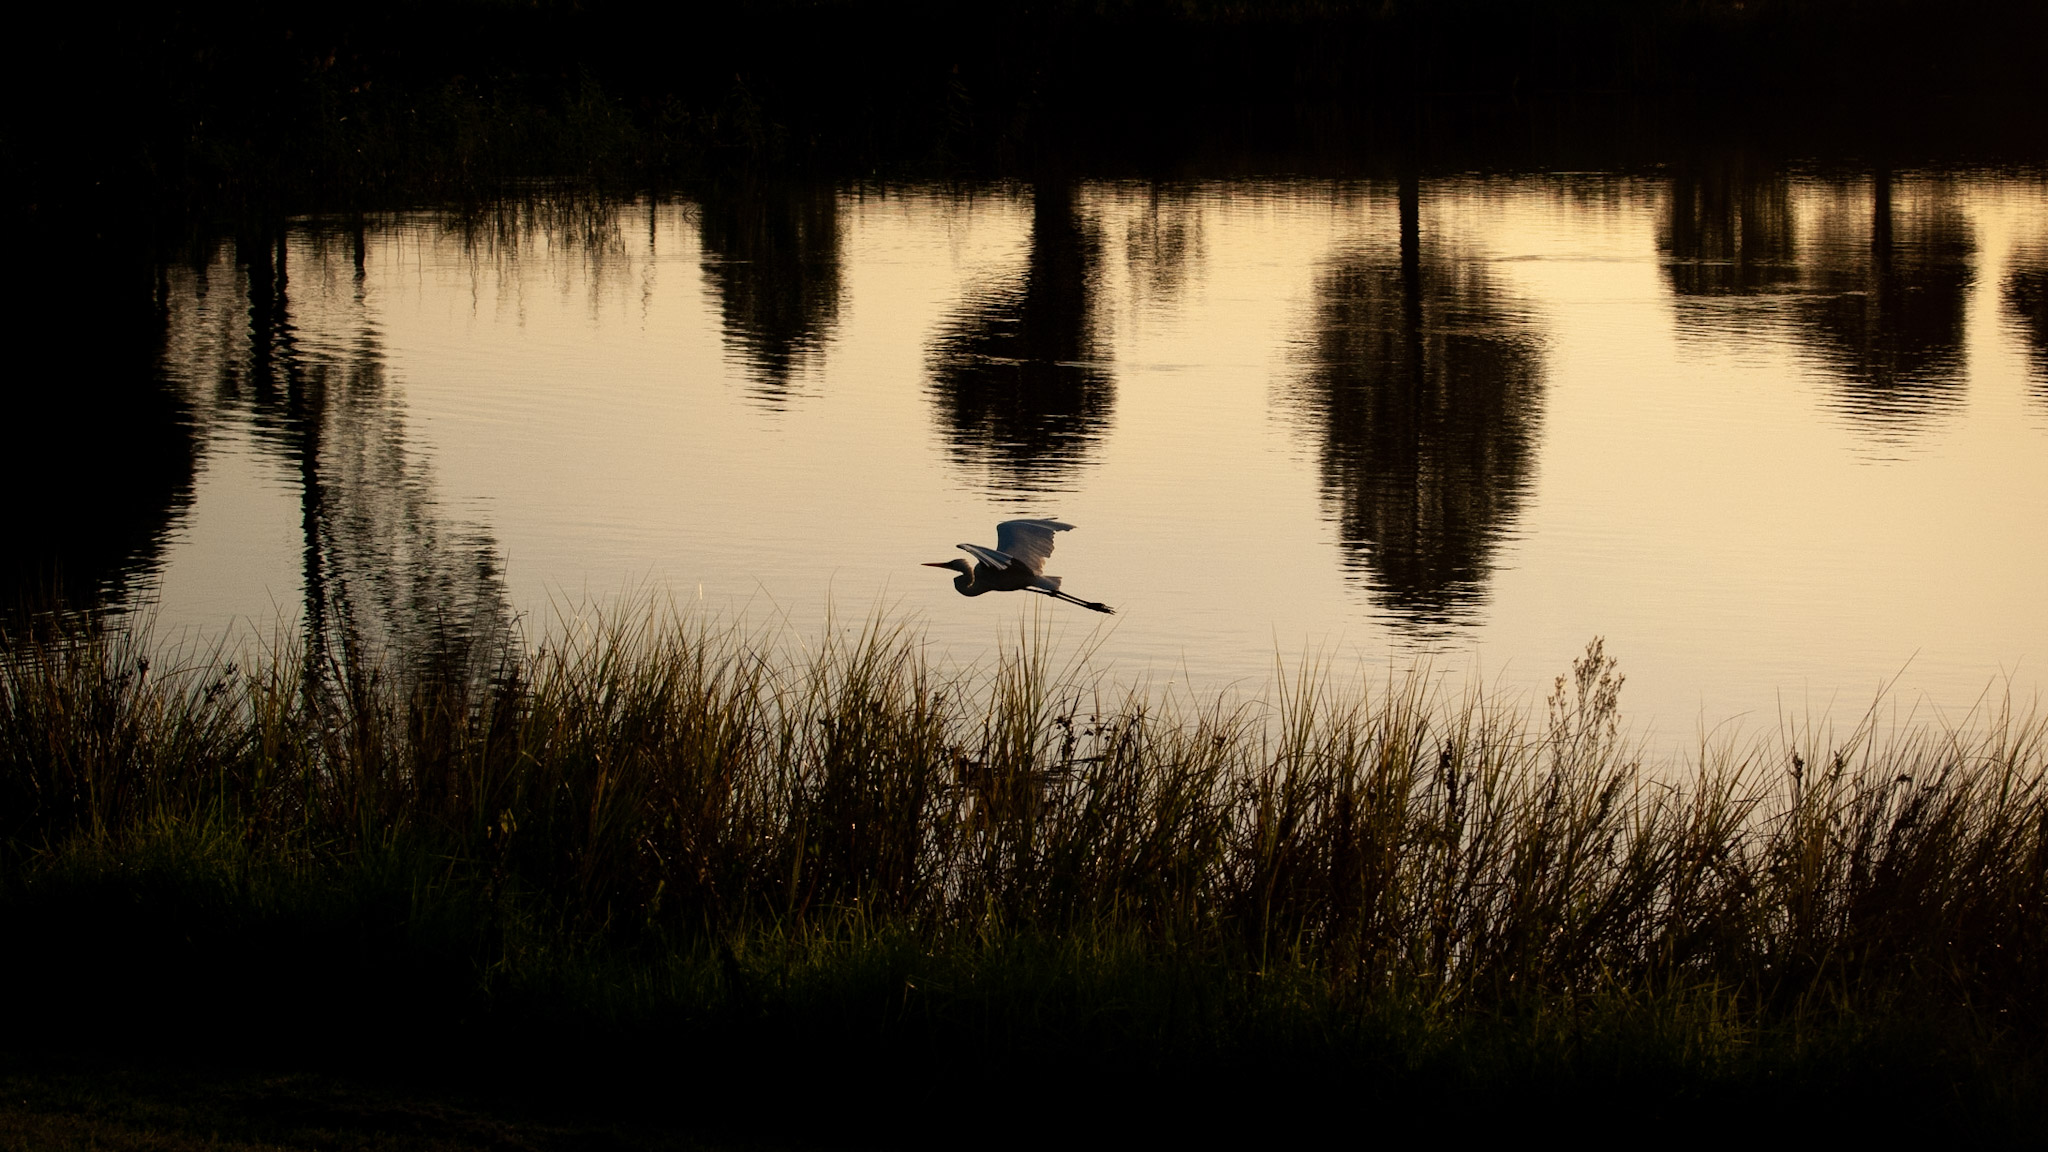 Bird over lake, (c) Ian Ferguson